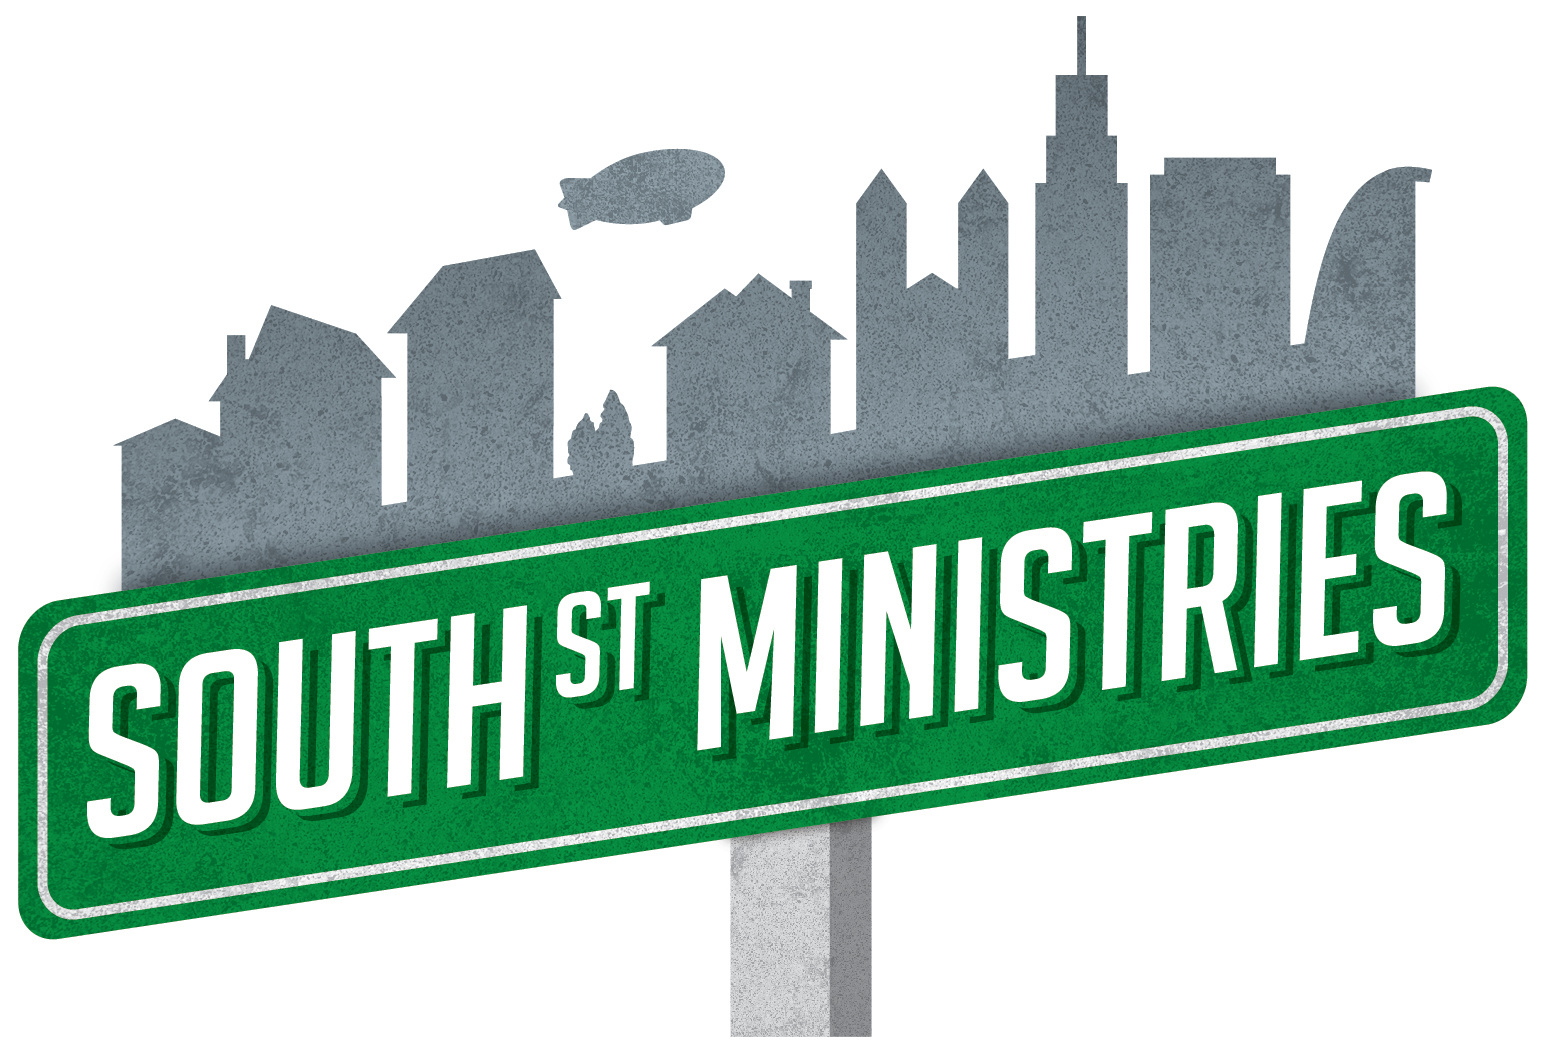 South Street Ministries